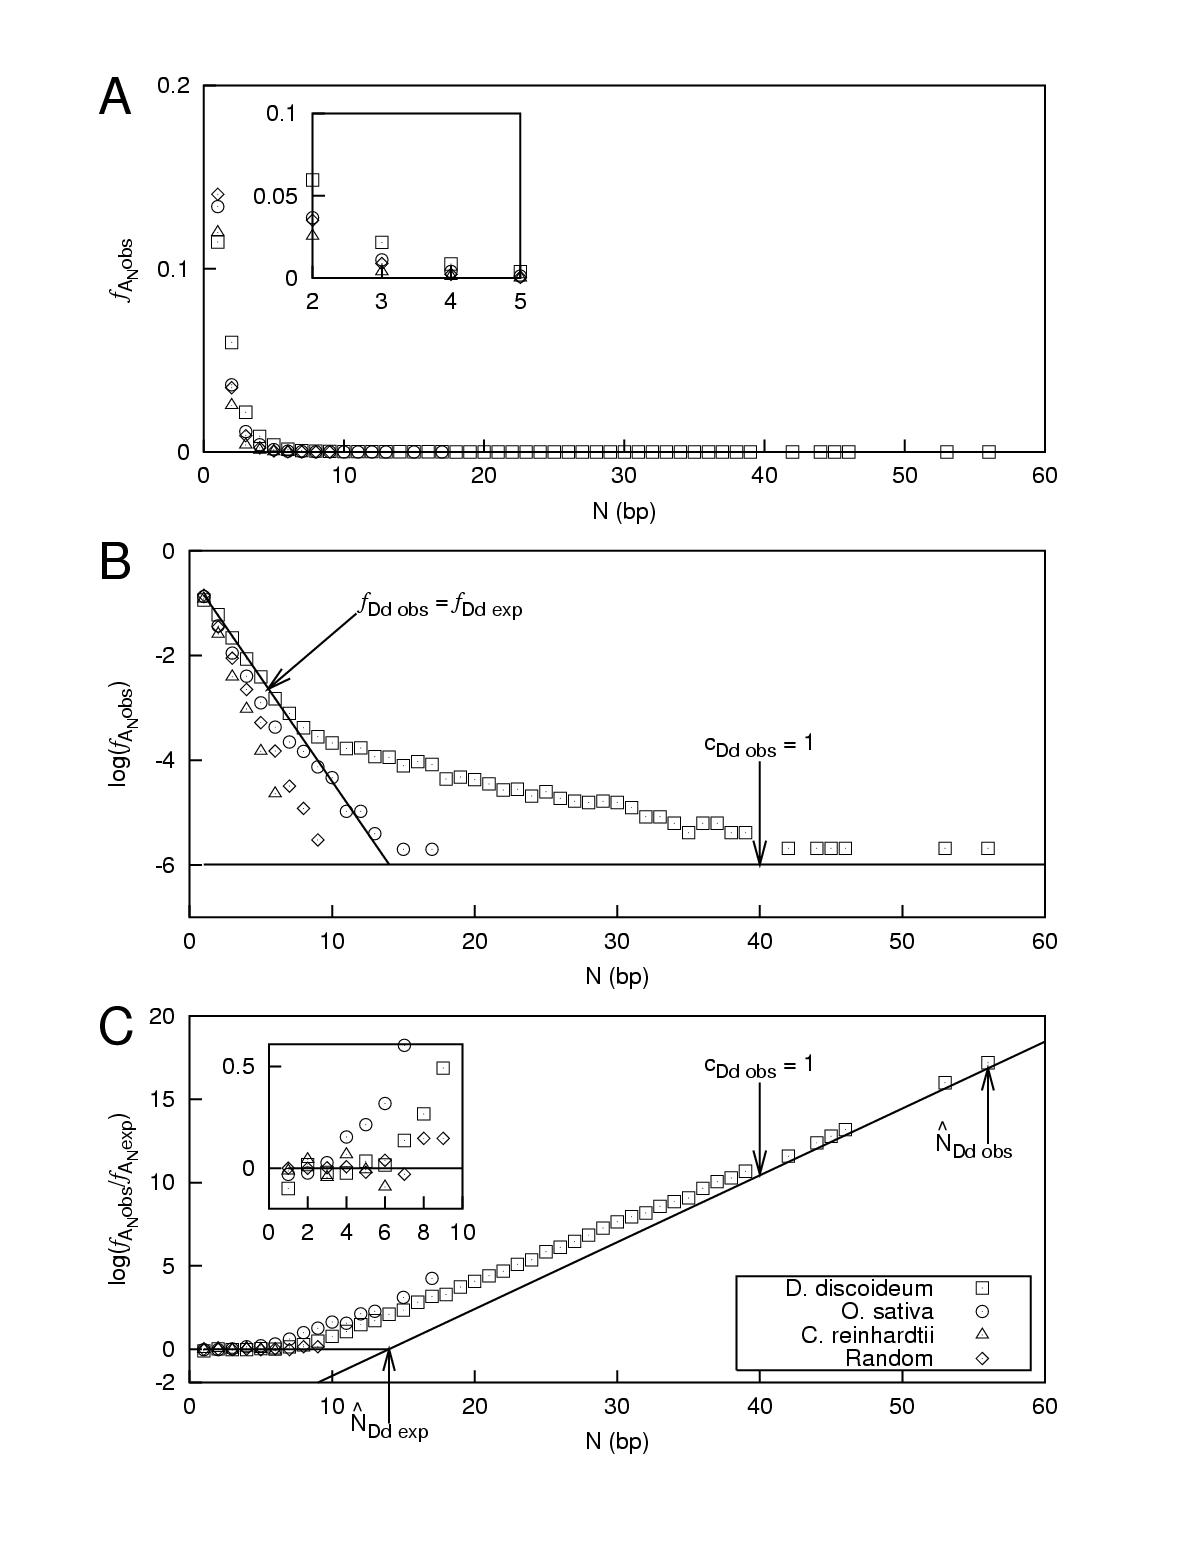 https://static-content.springer.com/image/art%3A10.1186%2F1471-2105-4-22/MediaObjects/12859_2003_Article_72_Fig1_HTML.jpg